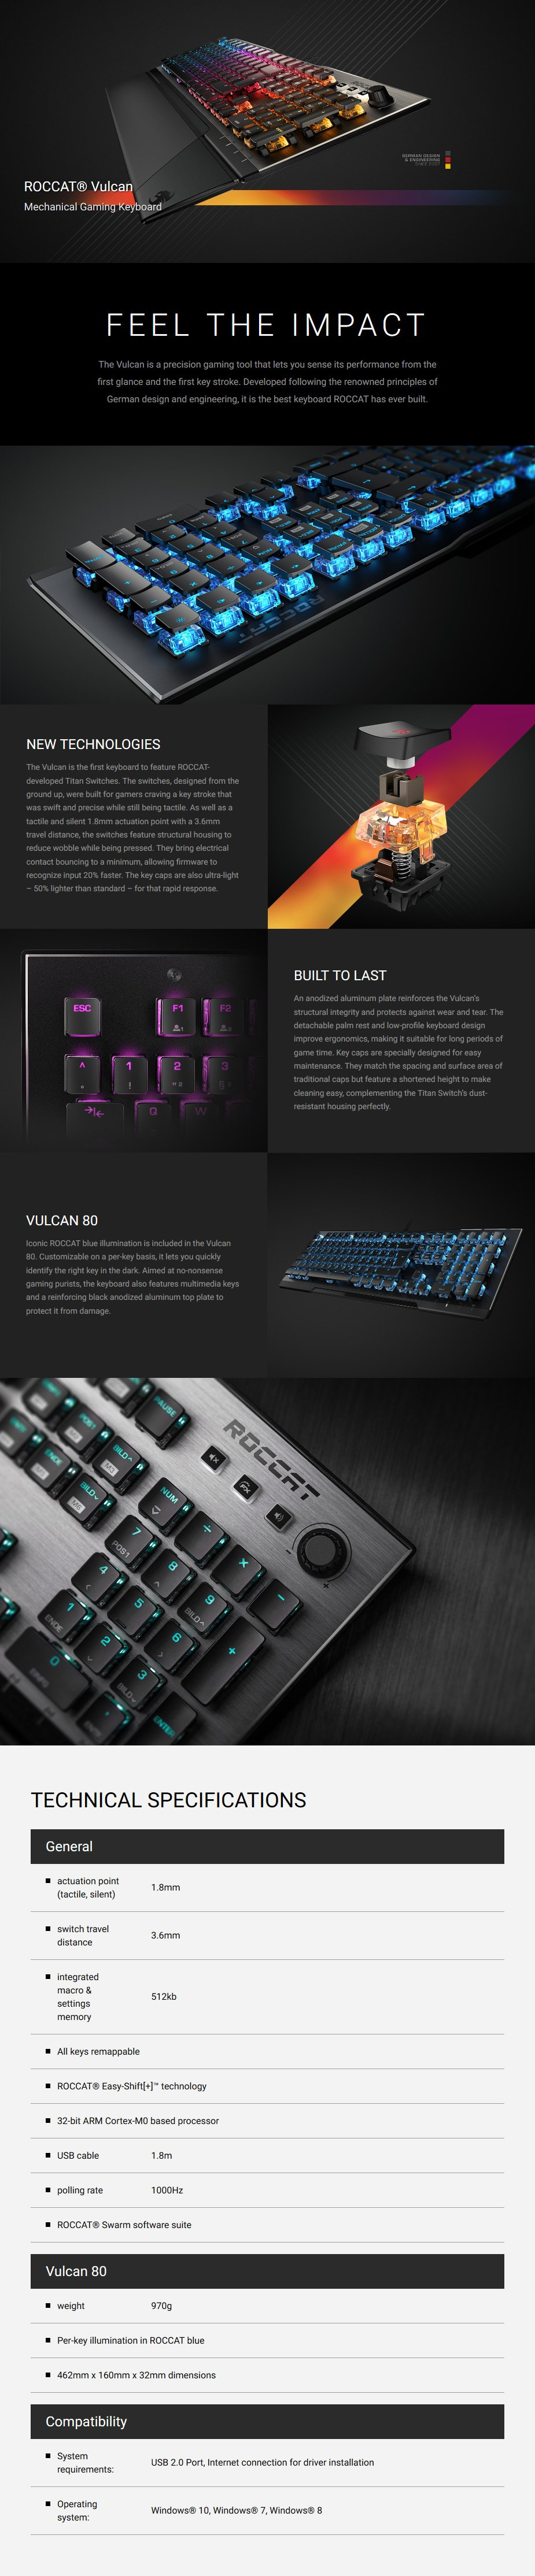 Roccat VULCAN 80 Mechanical Gaming Keyboard - Brown Titan Switches - Desktop Overview 1